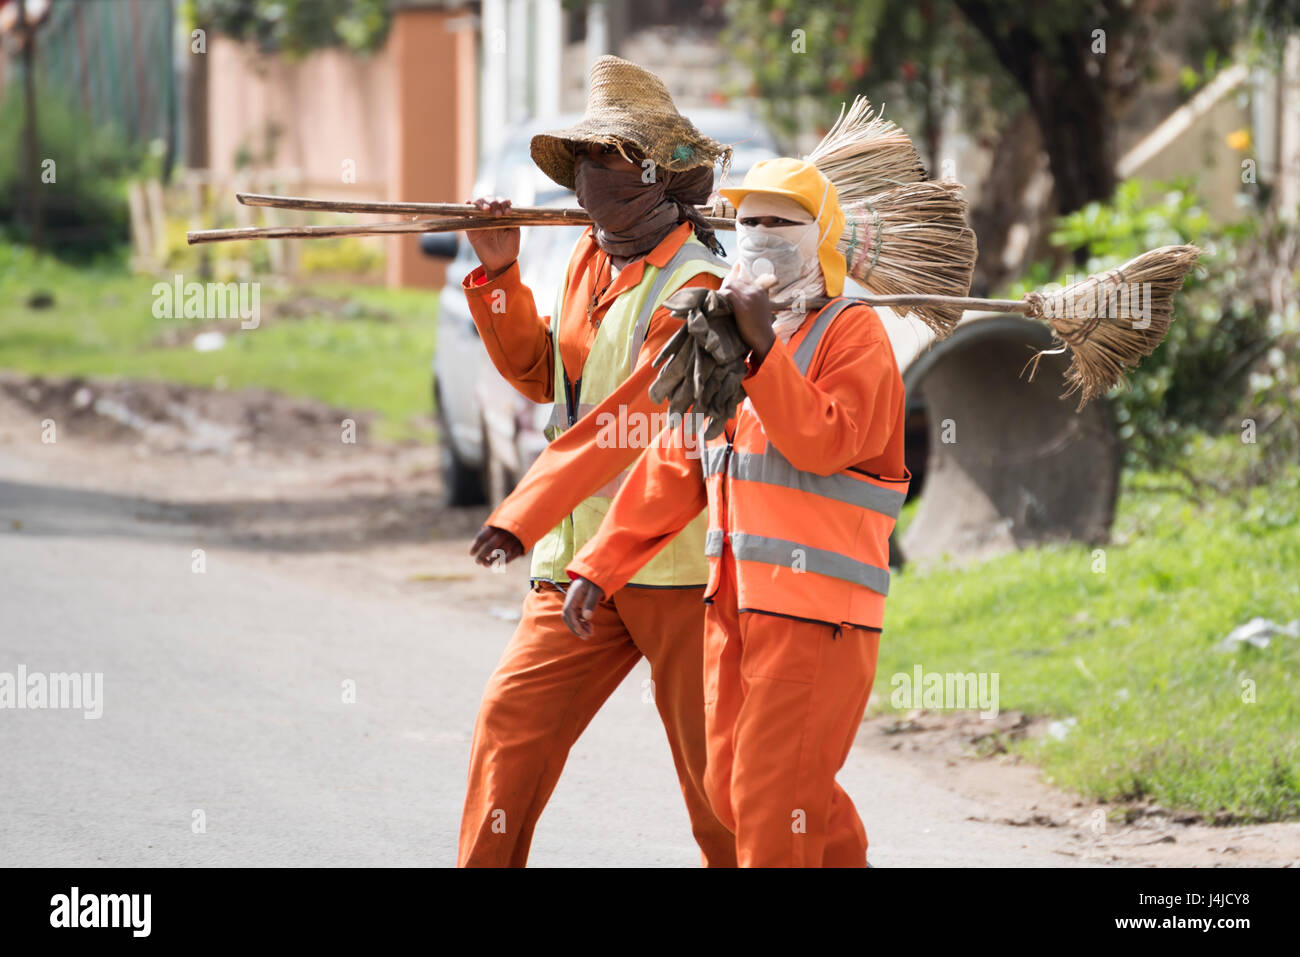 Ethiopian Street Cleaner in uniform walking on road in Addis Ababa - Stock Image